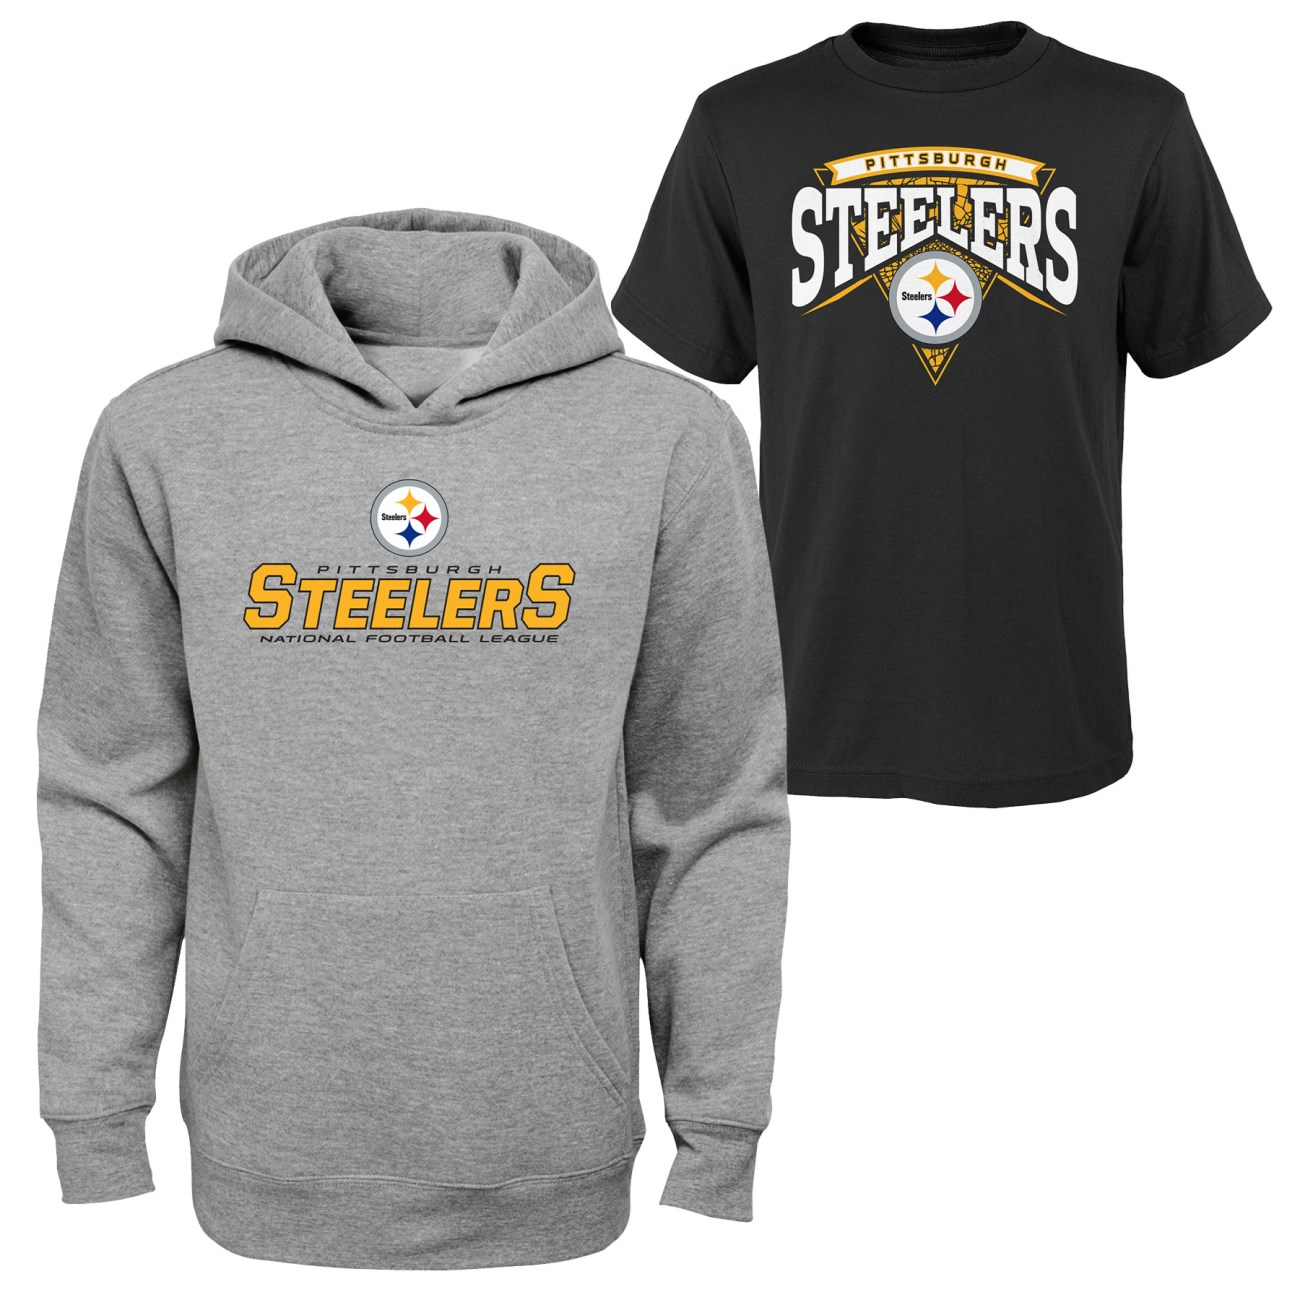 "Pittsburgh Steelers Youth NFL ""Layered"" T-Shirt & Hooded Sweatshirt Combo Set"